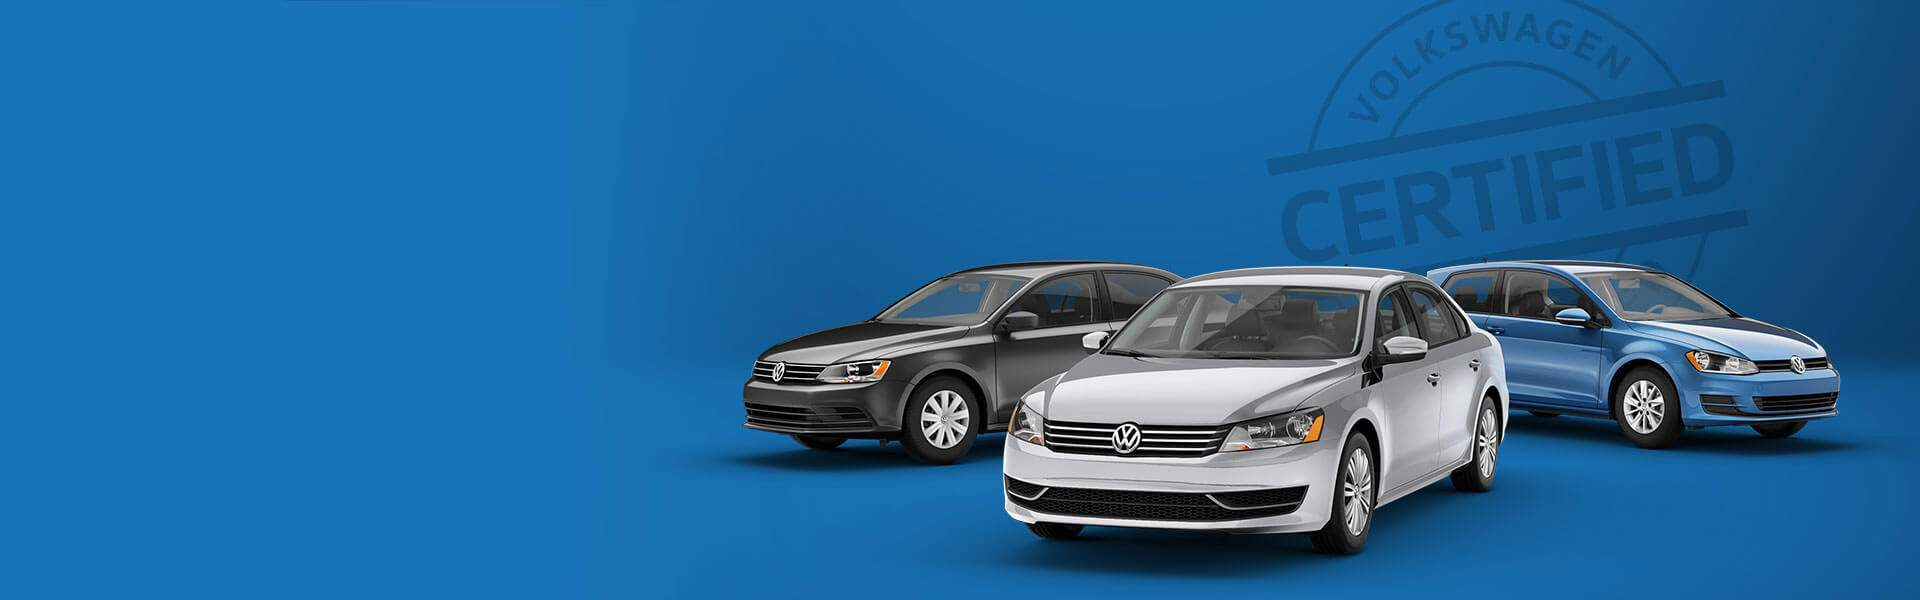 Volkswagen Certified Pre-Owned in Monroeville, NJ